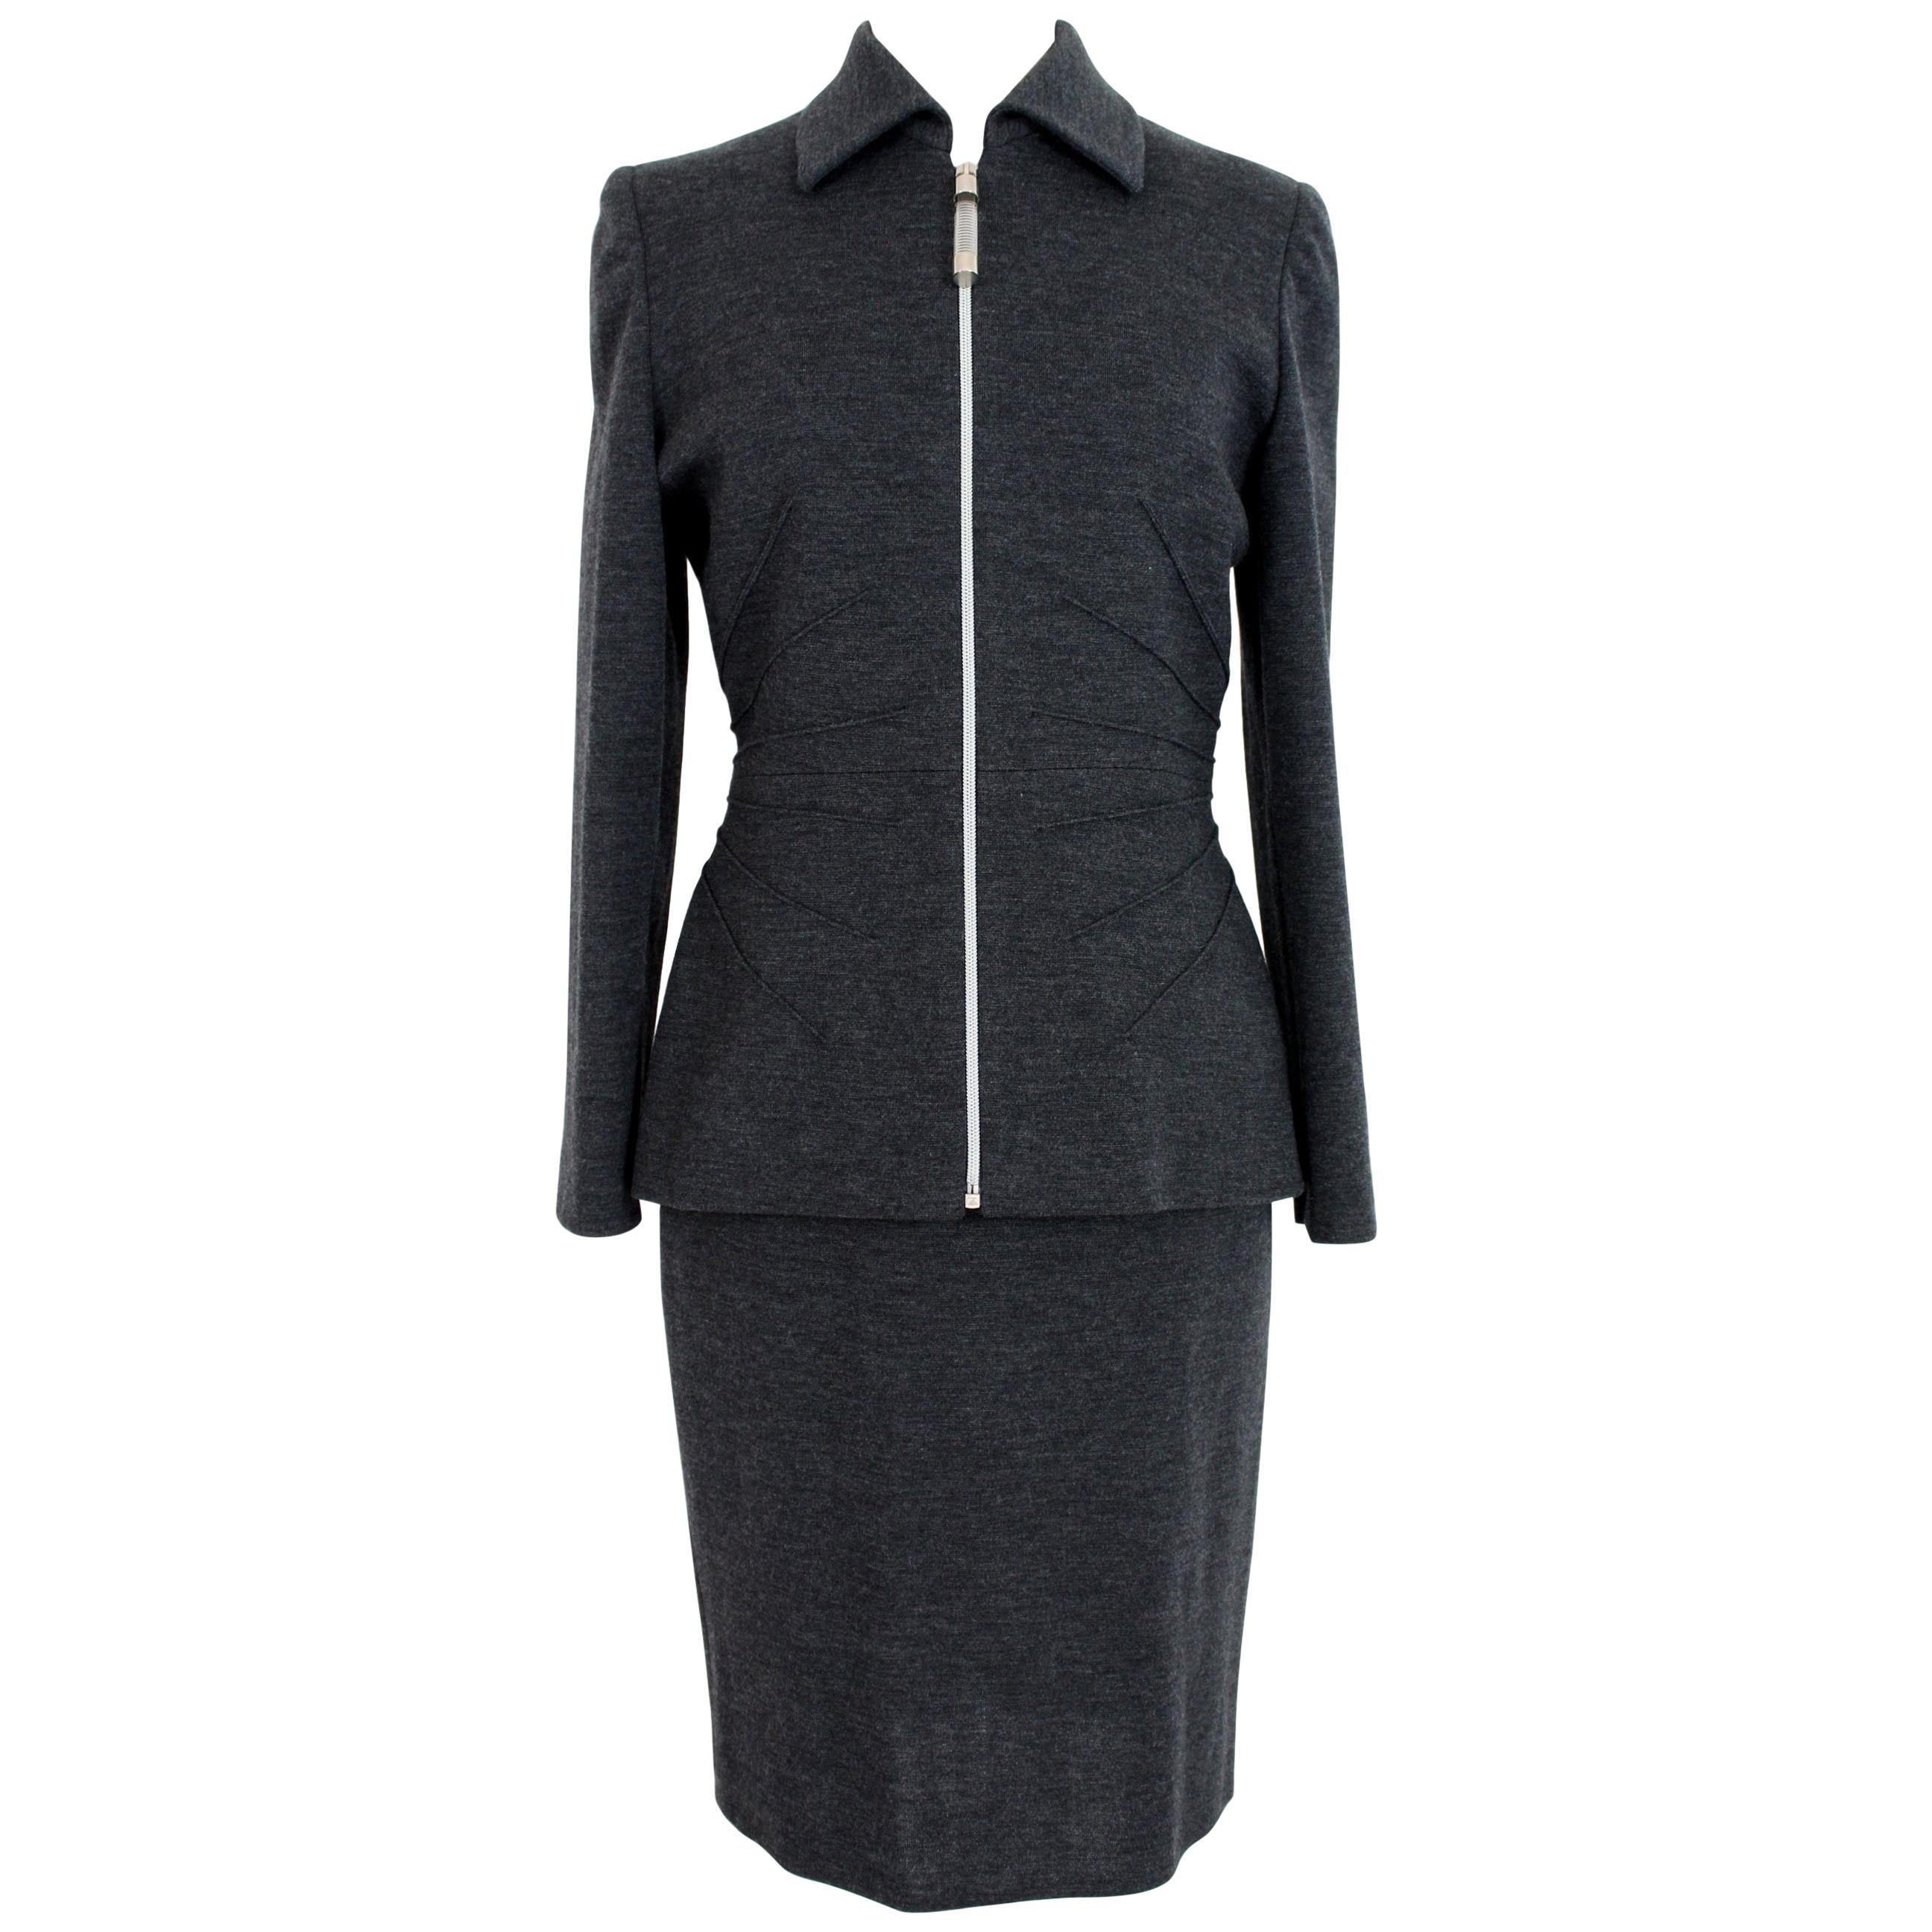 Gai Mattiolo Wool Gray Casual Suit Skirt and Jacket